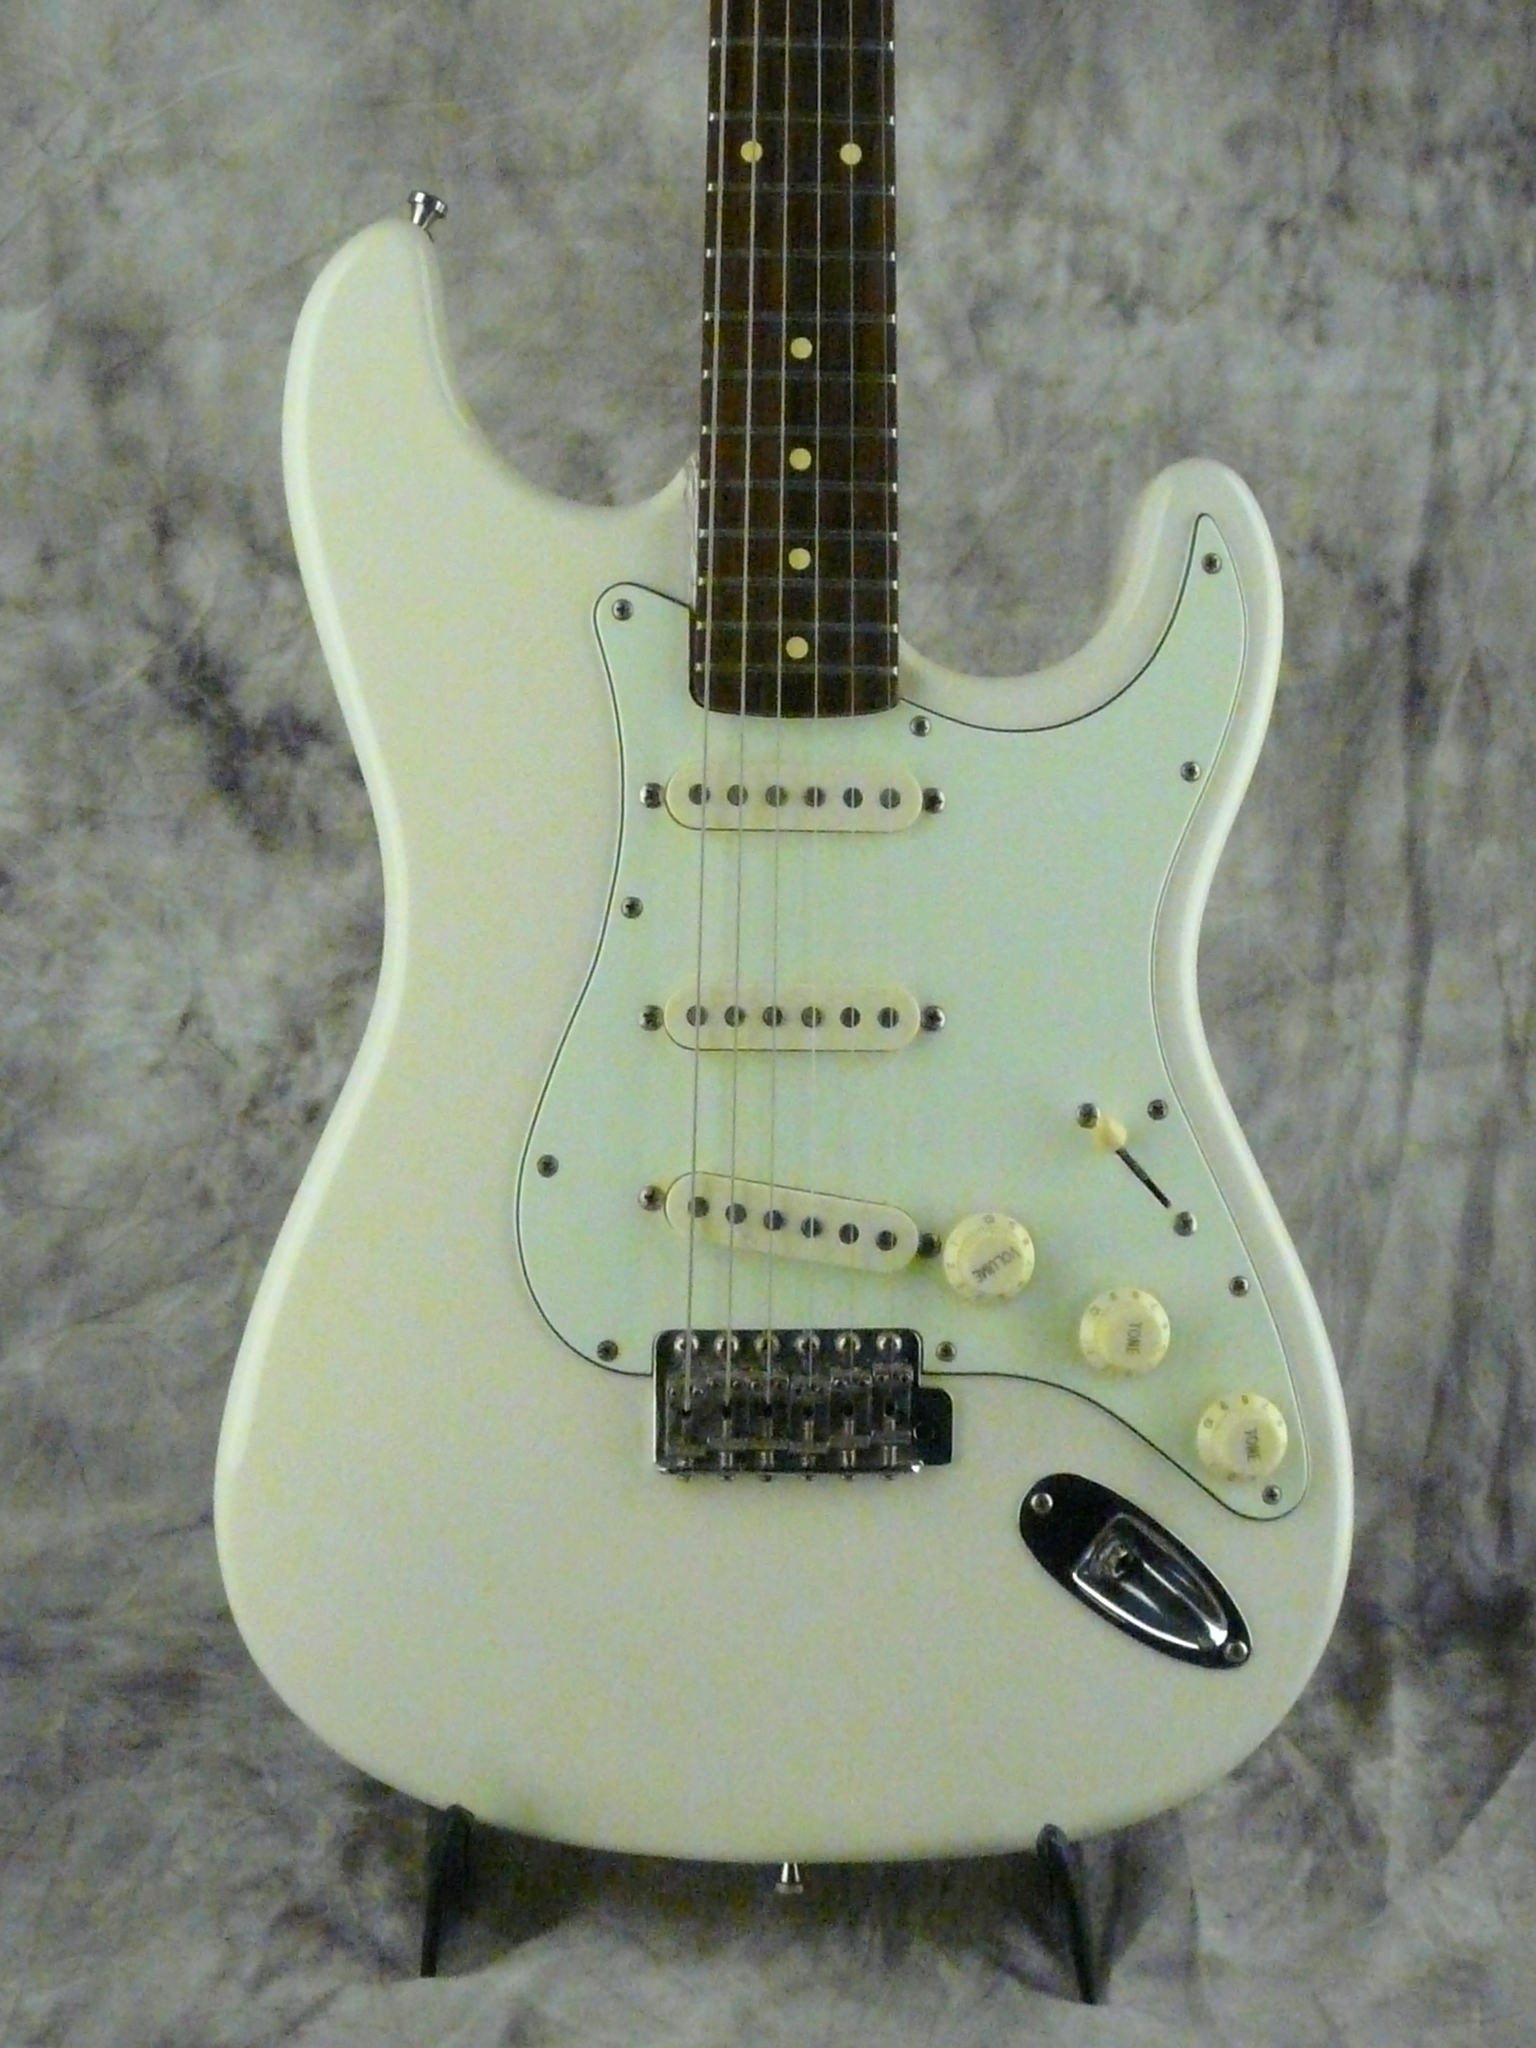 img/vintage/3254/Diego-Stratocaster-1998-olympic-white-002.JPG